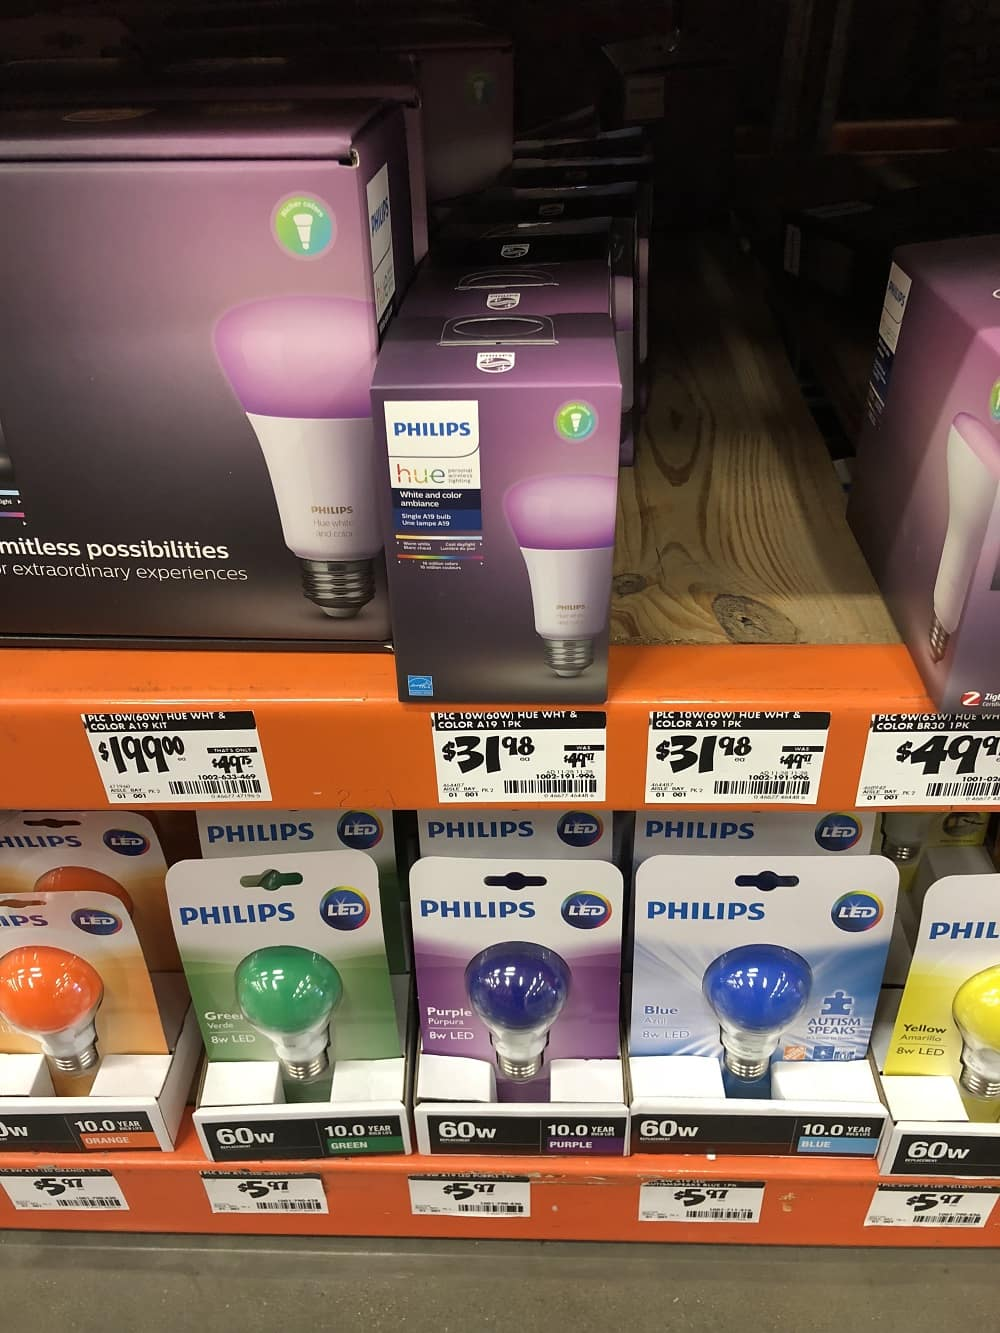 Philips Hue White and Color A19 60W LED Equivalent Dimmable Smart Bulb from Home Depot YMMV $31.98